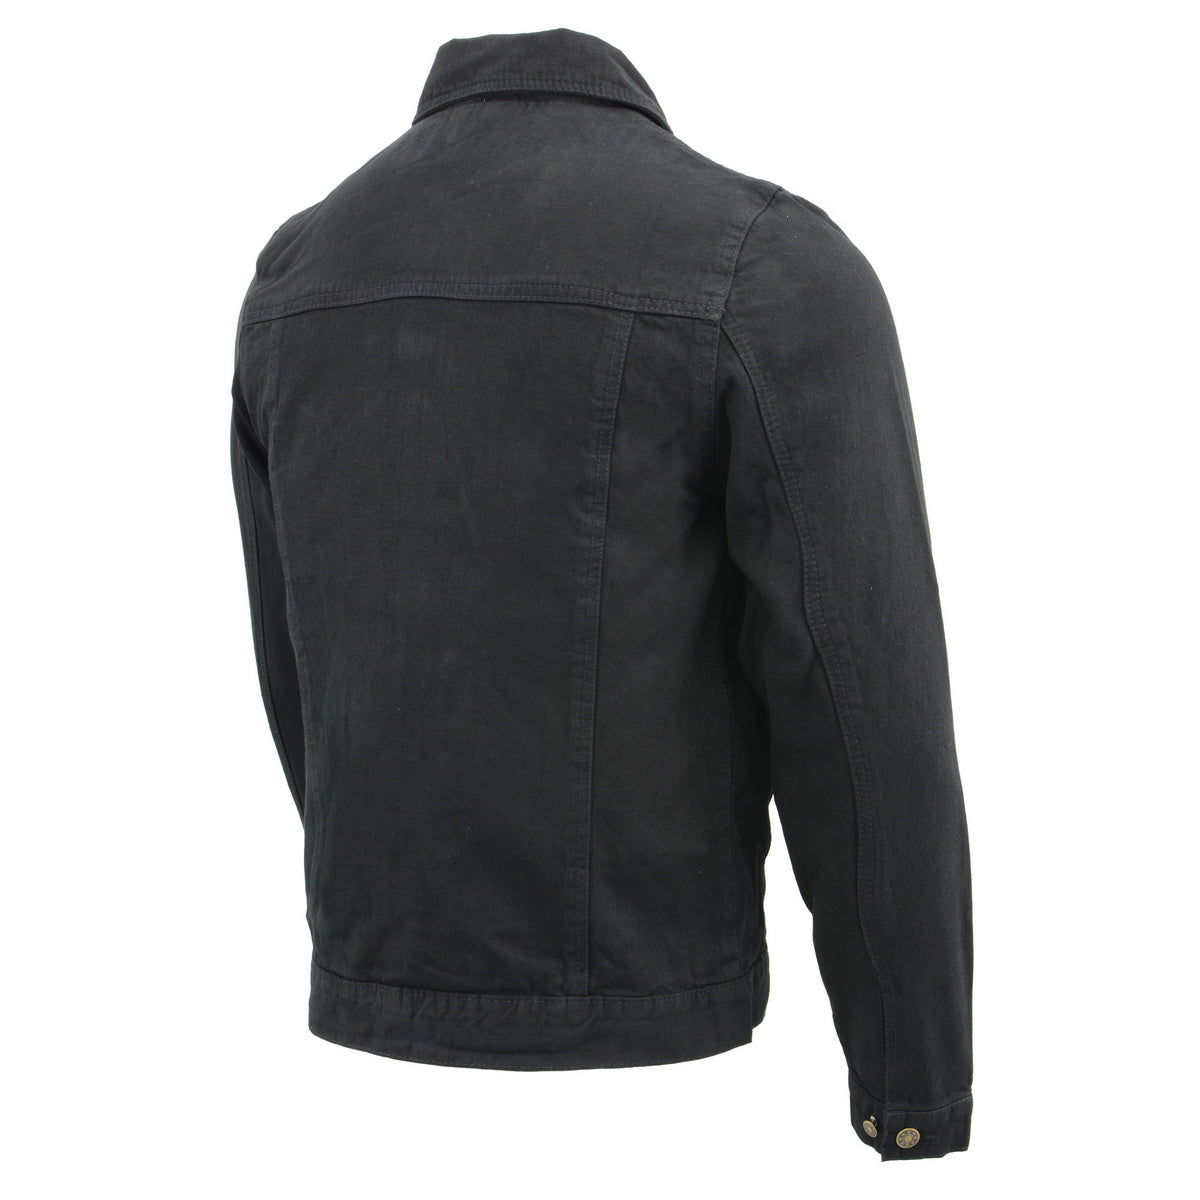 M Boss Motorcycle Apparel BOS11015 Mens Black Classic Jean Pocket